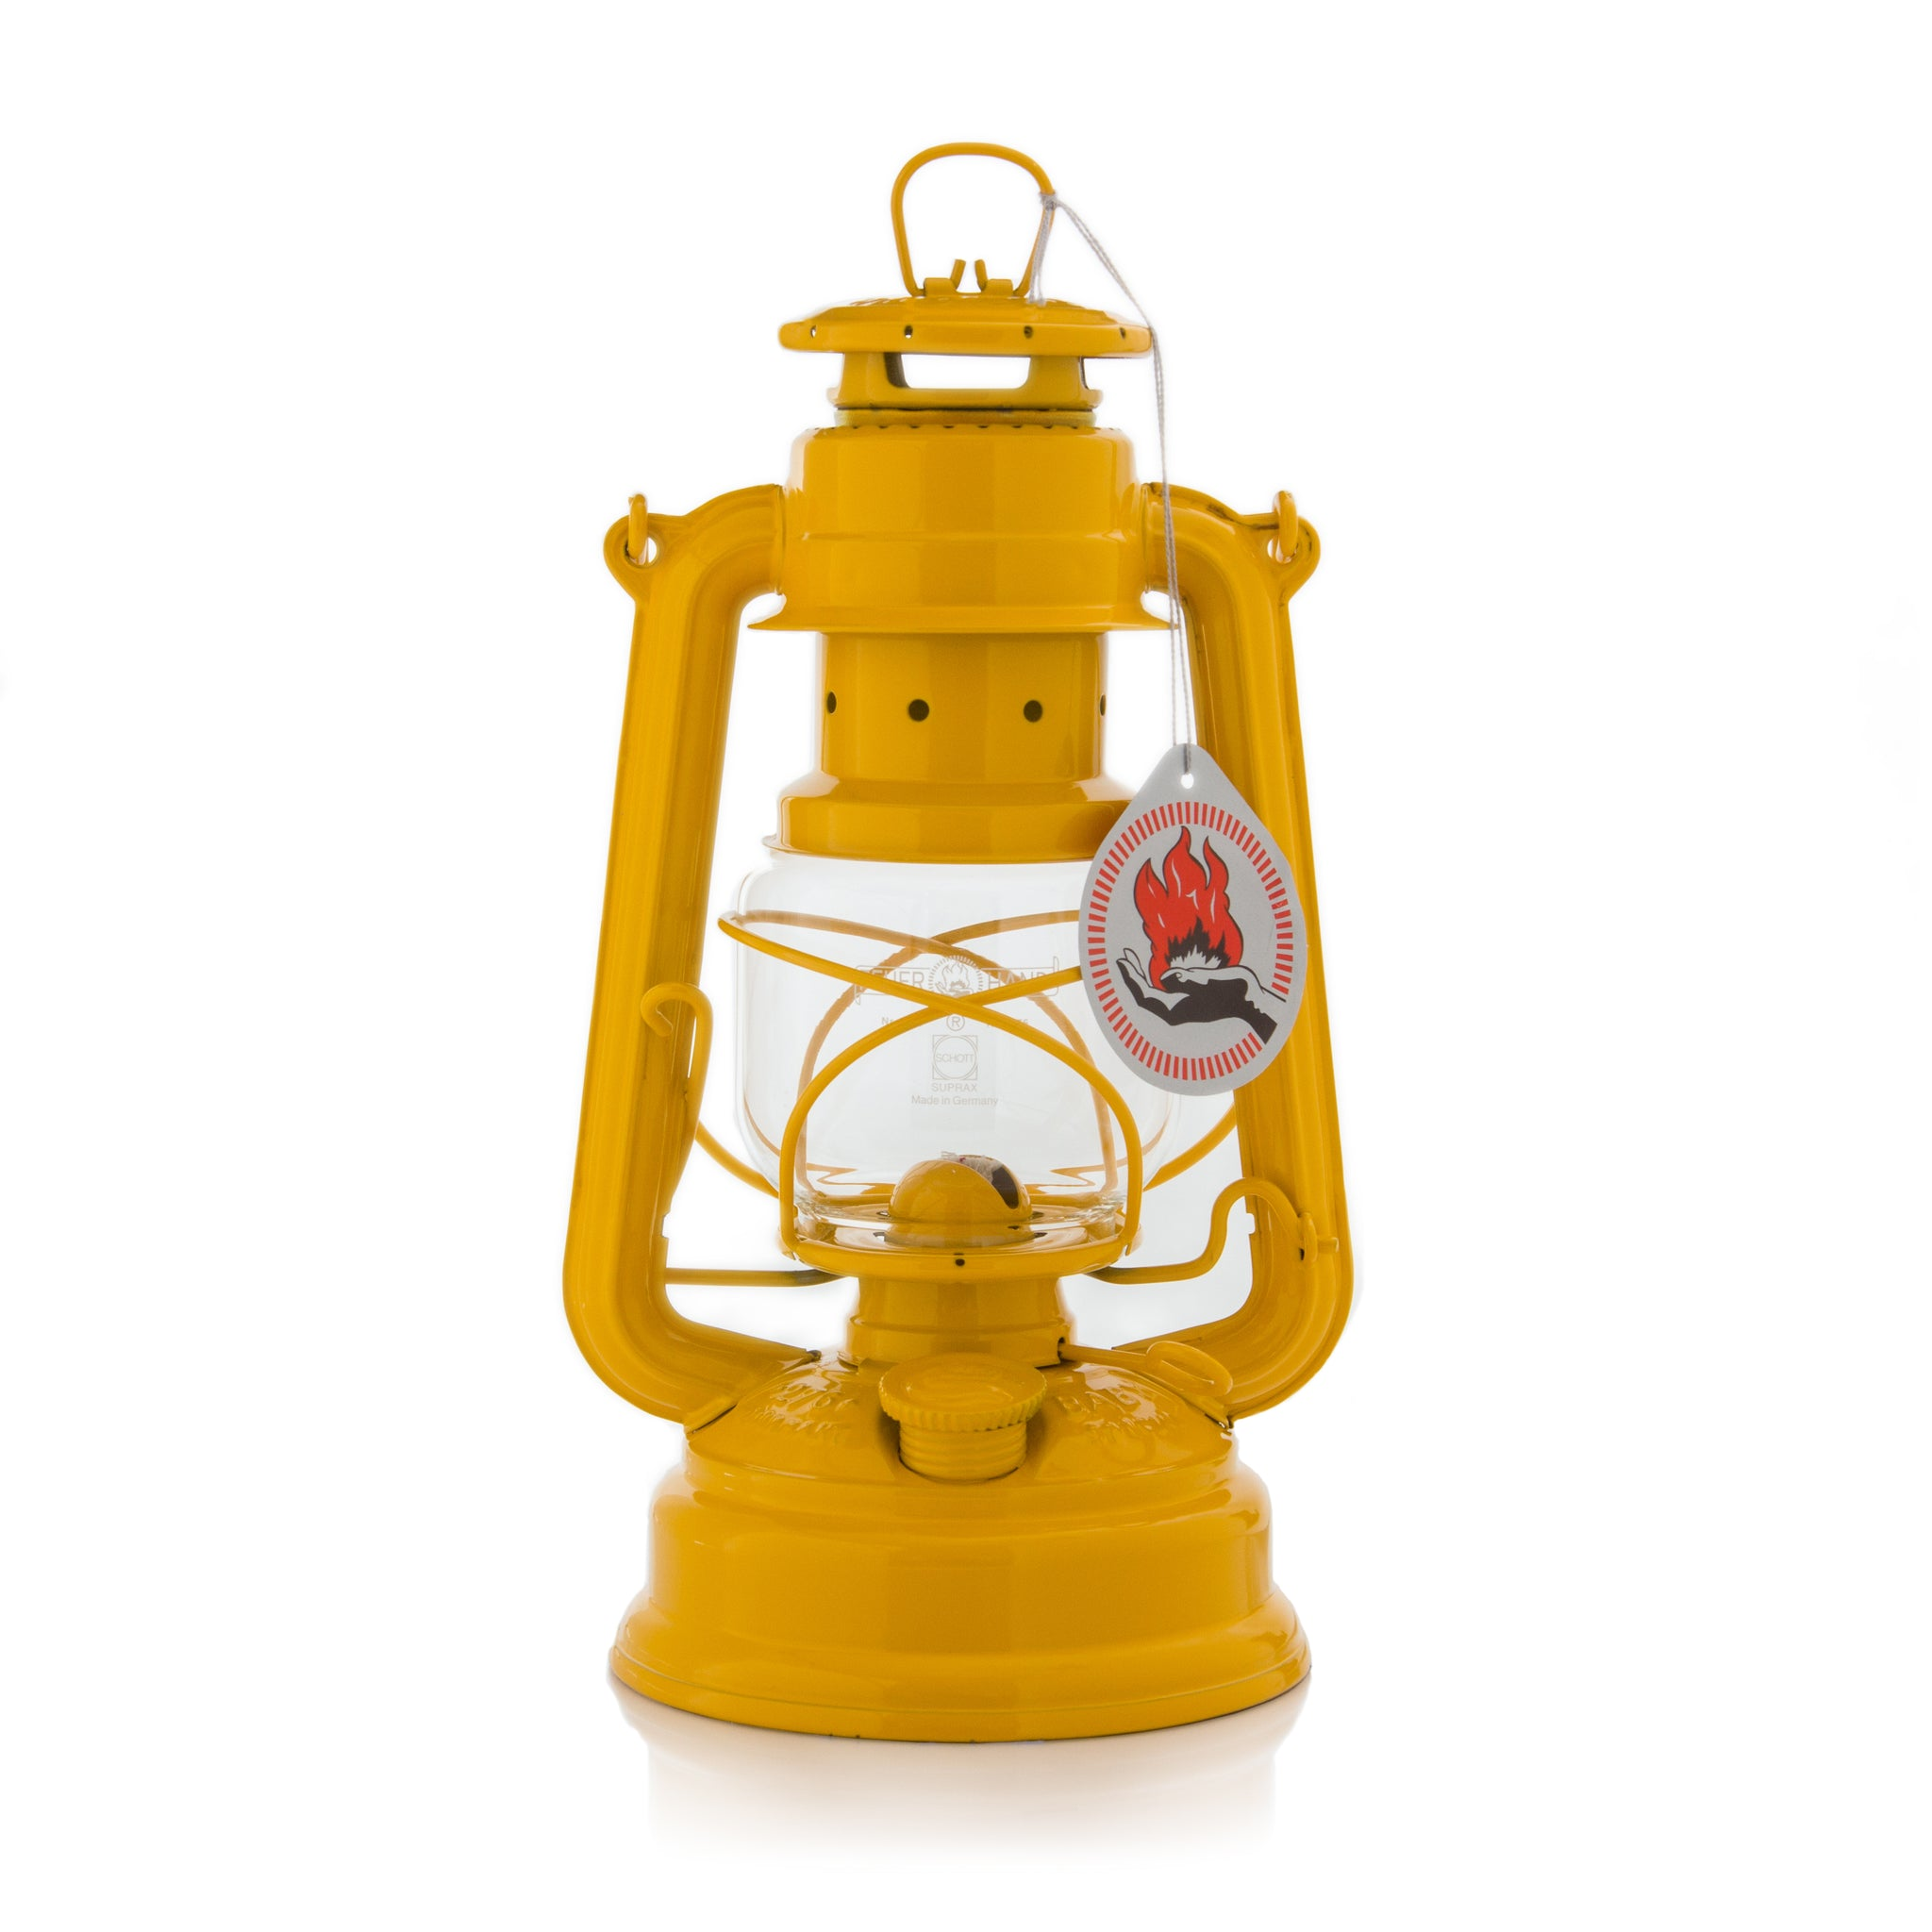 ORIGINAL FEUERHAND HURRICANE KEROSENE OIL CAMPING OUTDOOR LANTERN LAMP - YELLOW